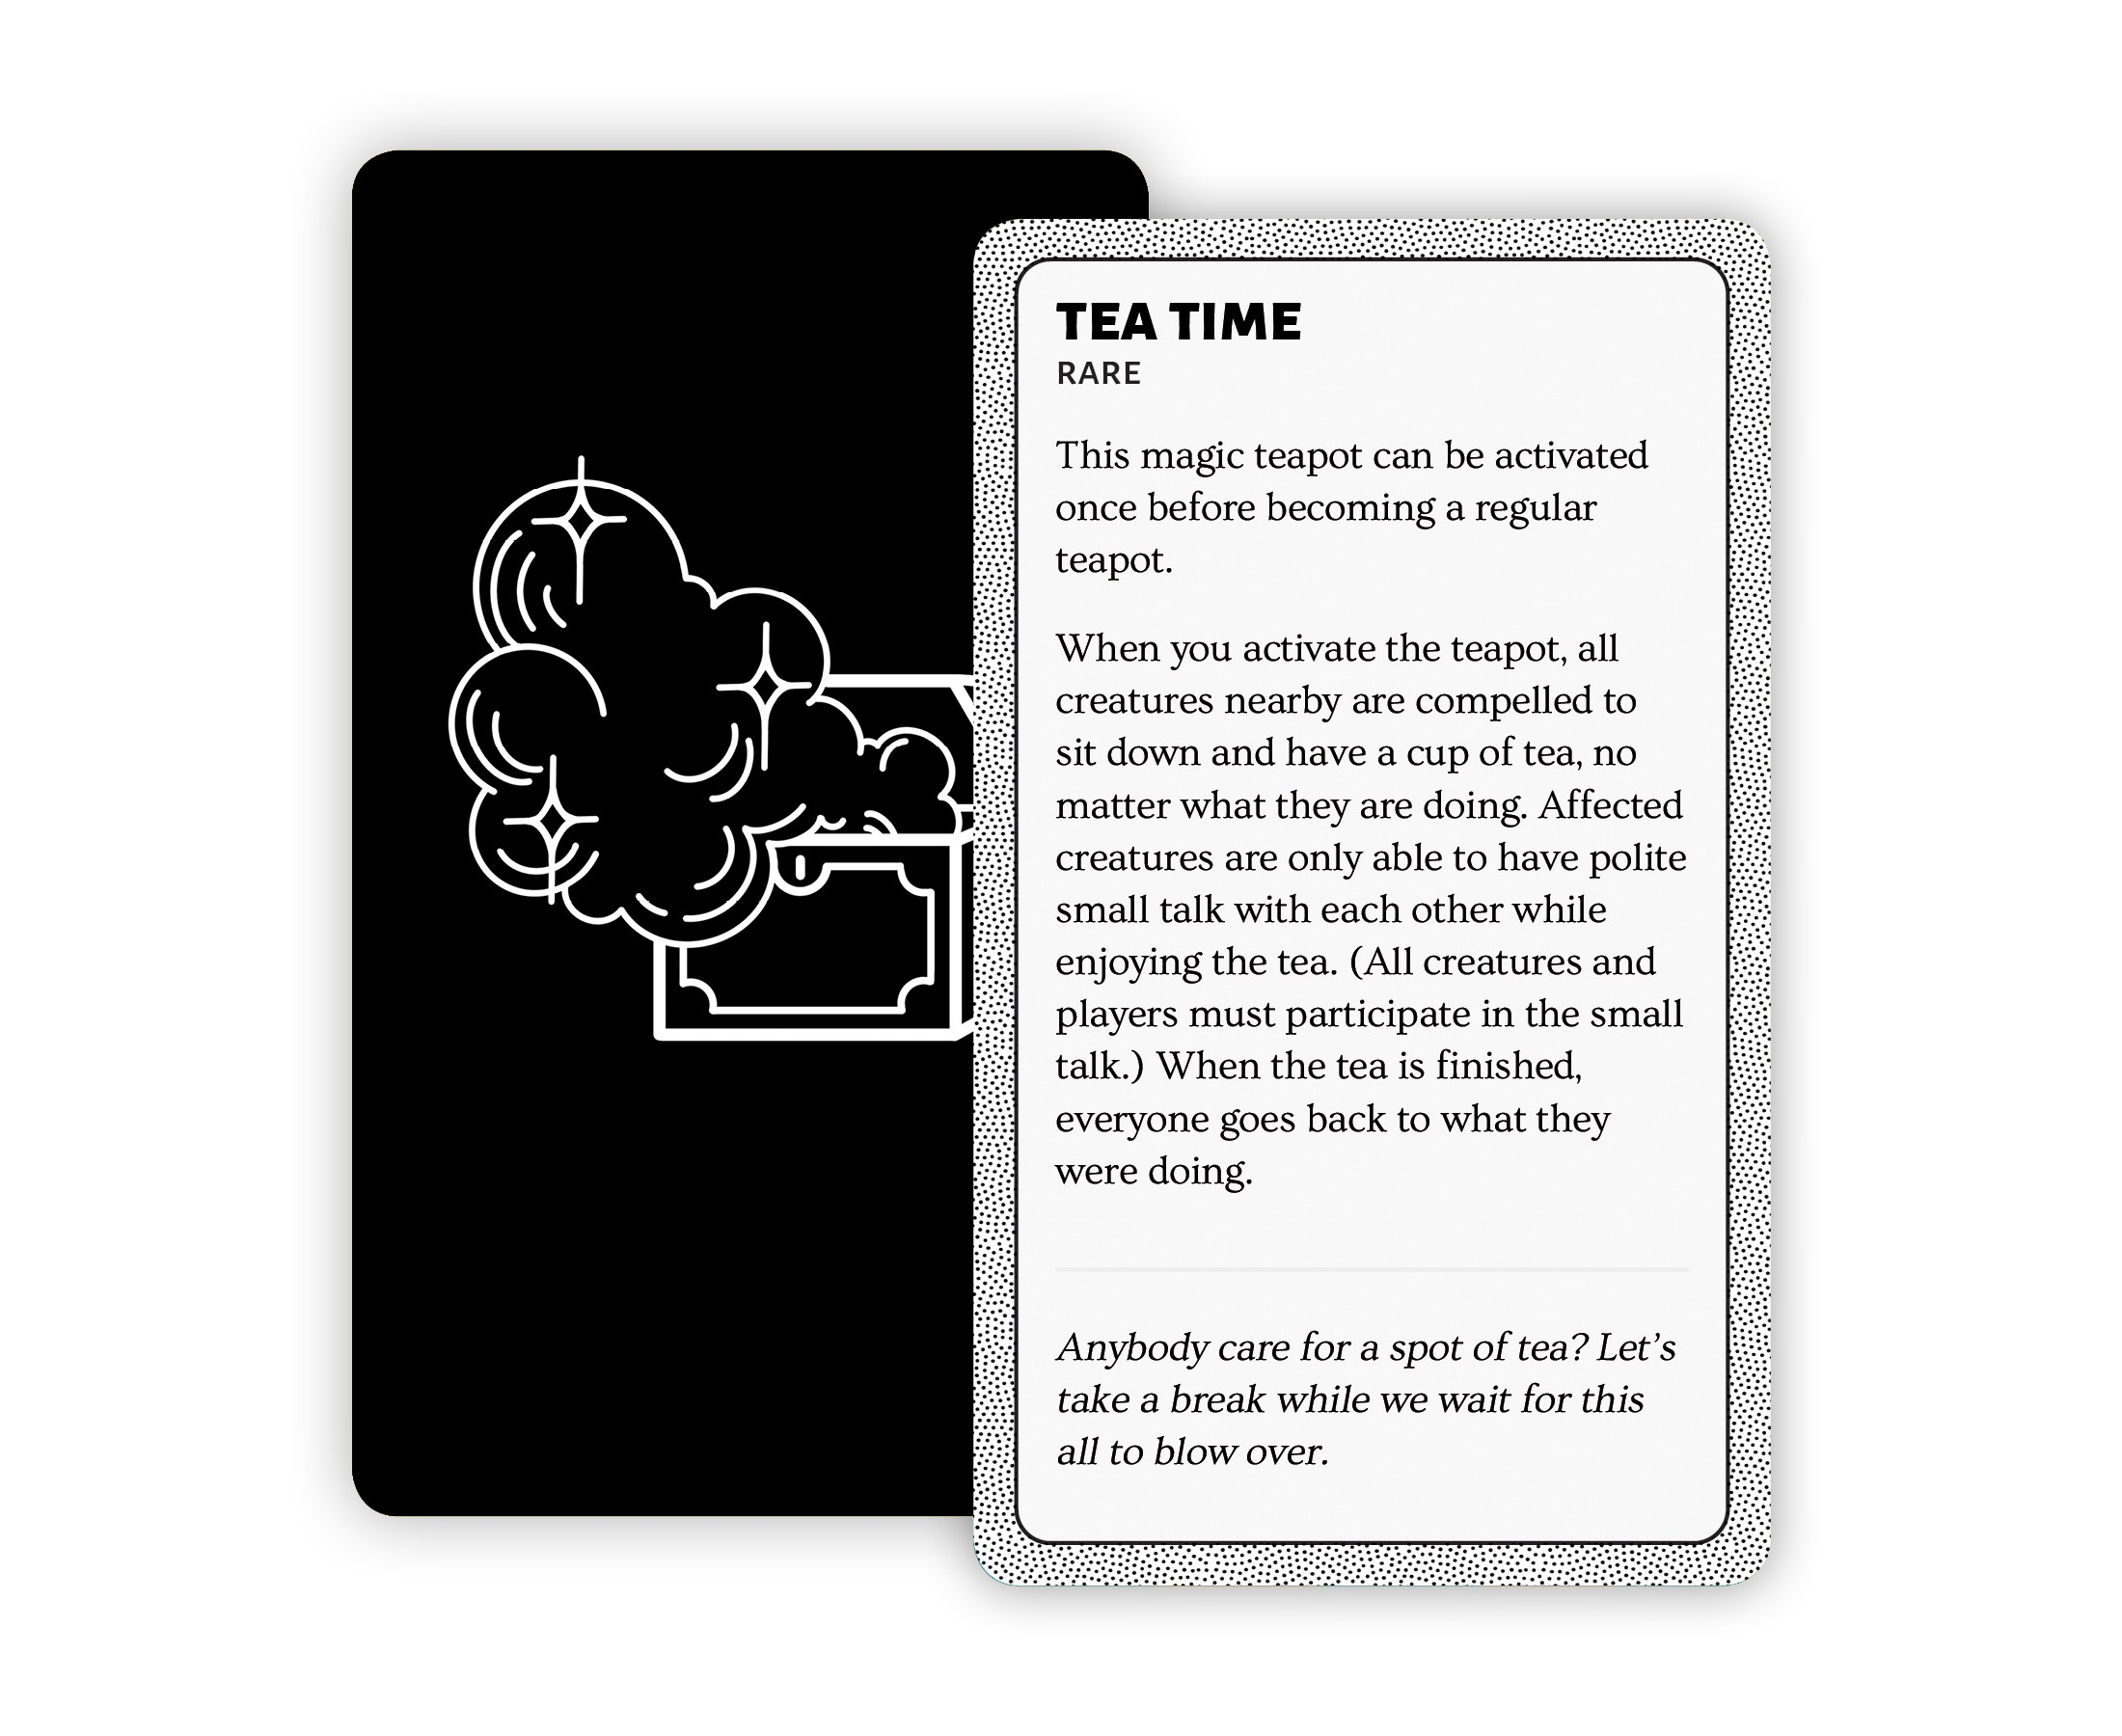 Tea Time: a rare magic teapot that can be used to compel all creatures nearby to sit down for a cup of tea and small talk.